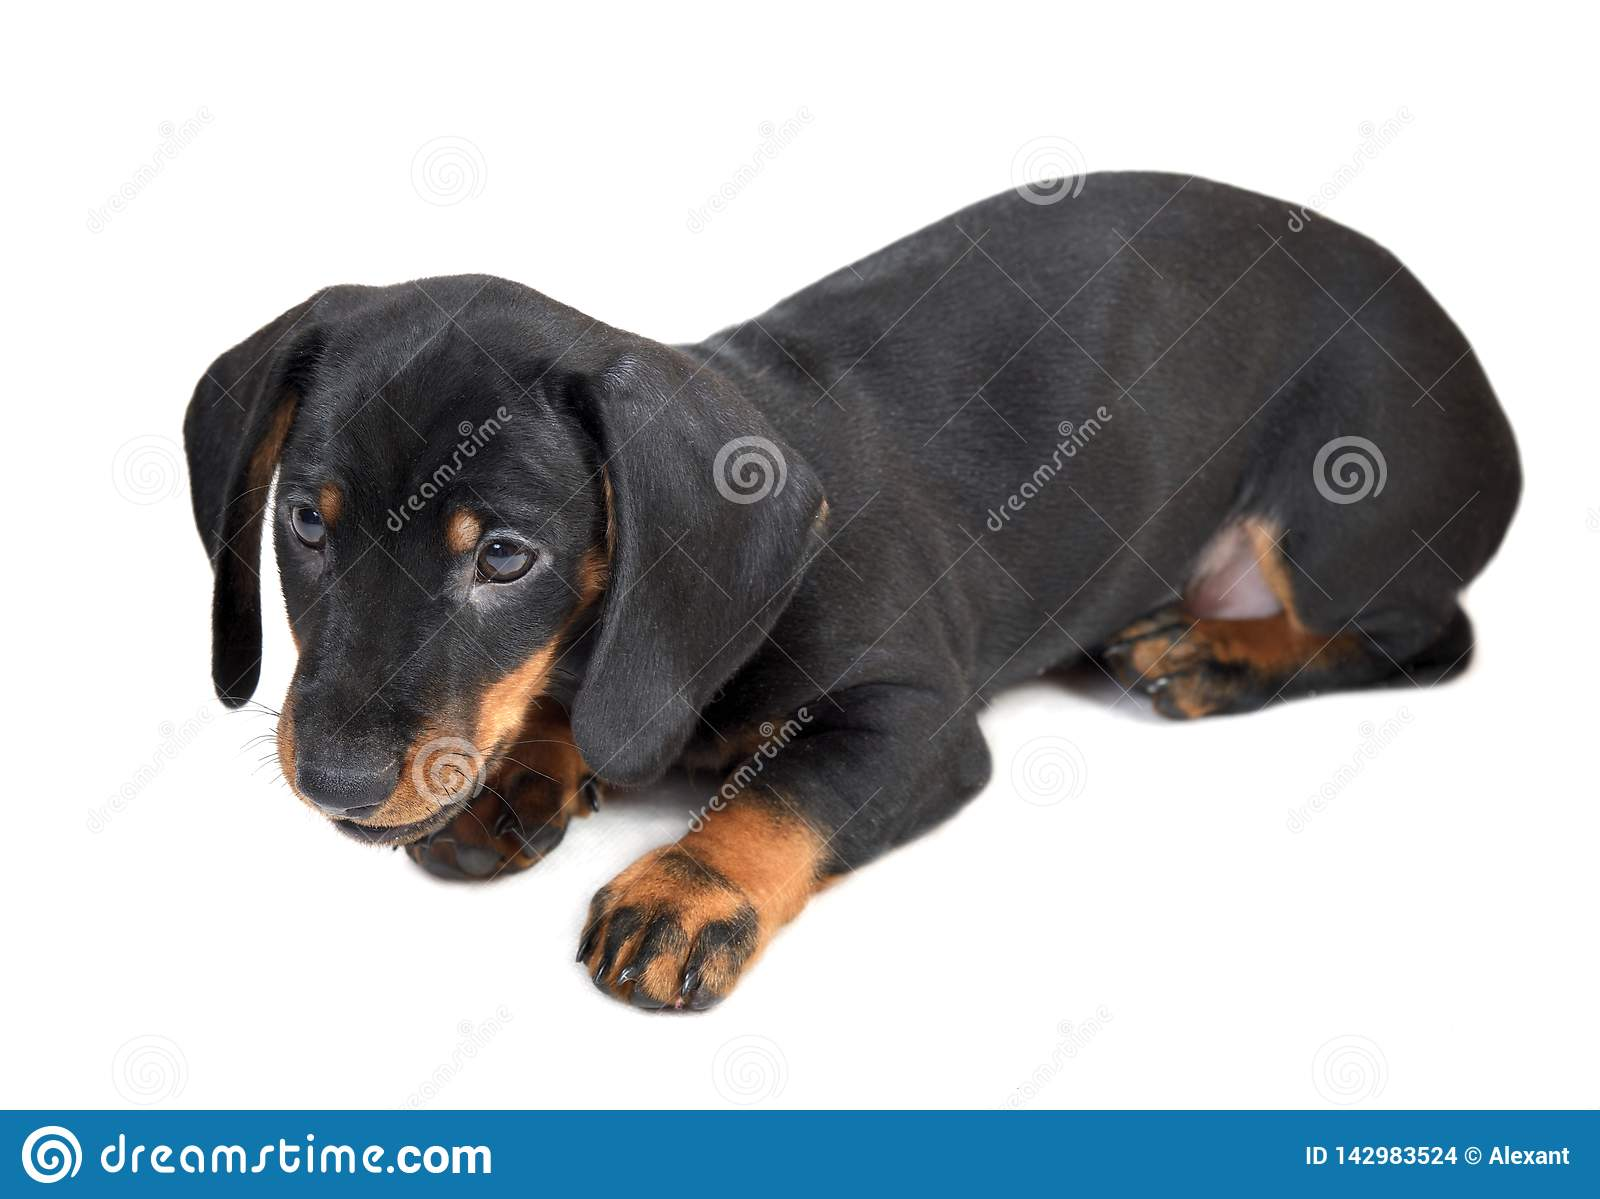 Lying two-month smooth black and tan dachshund puppy